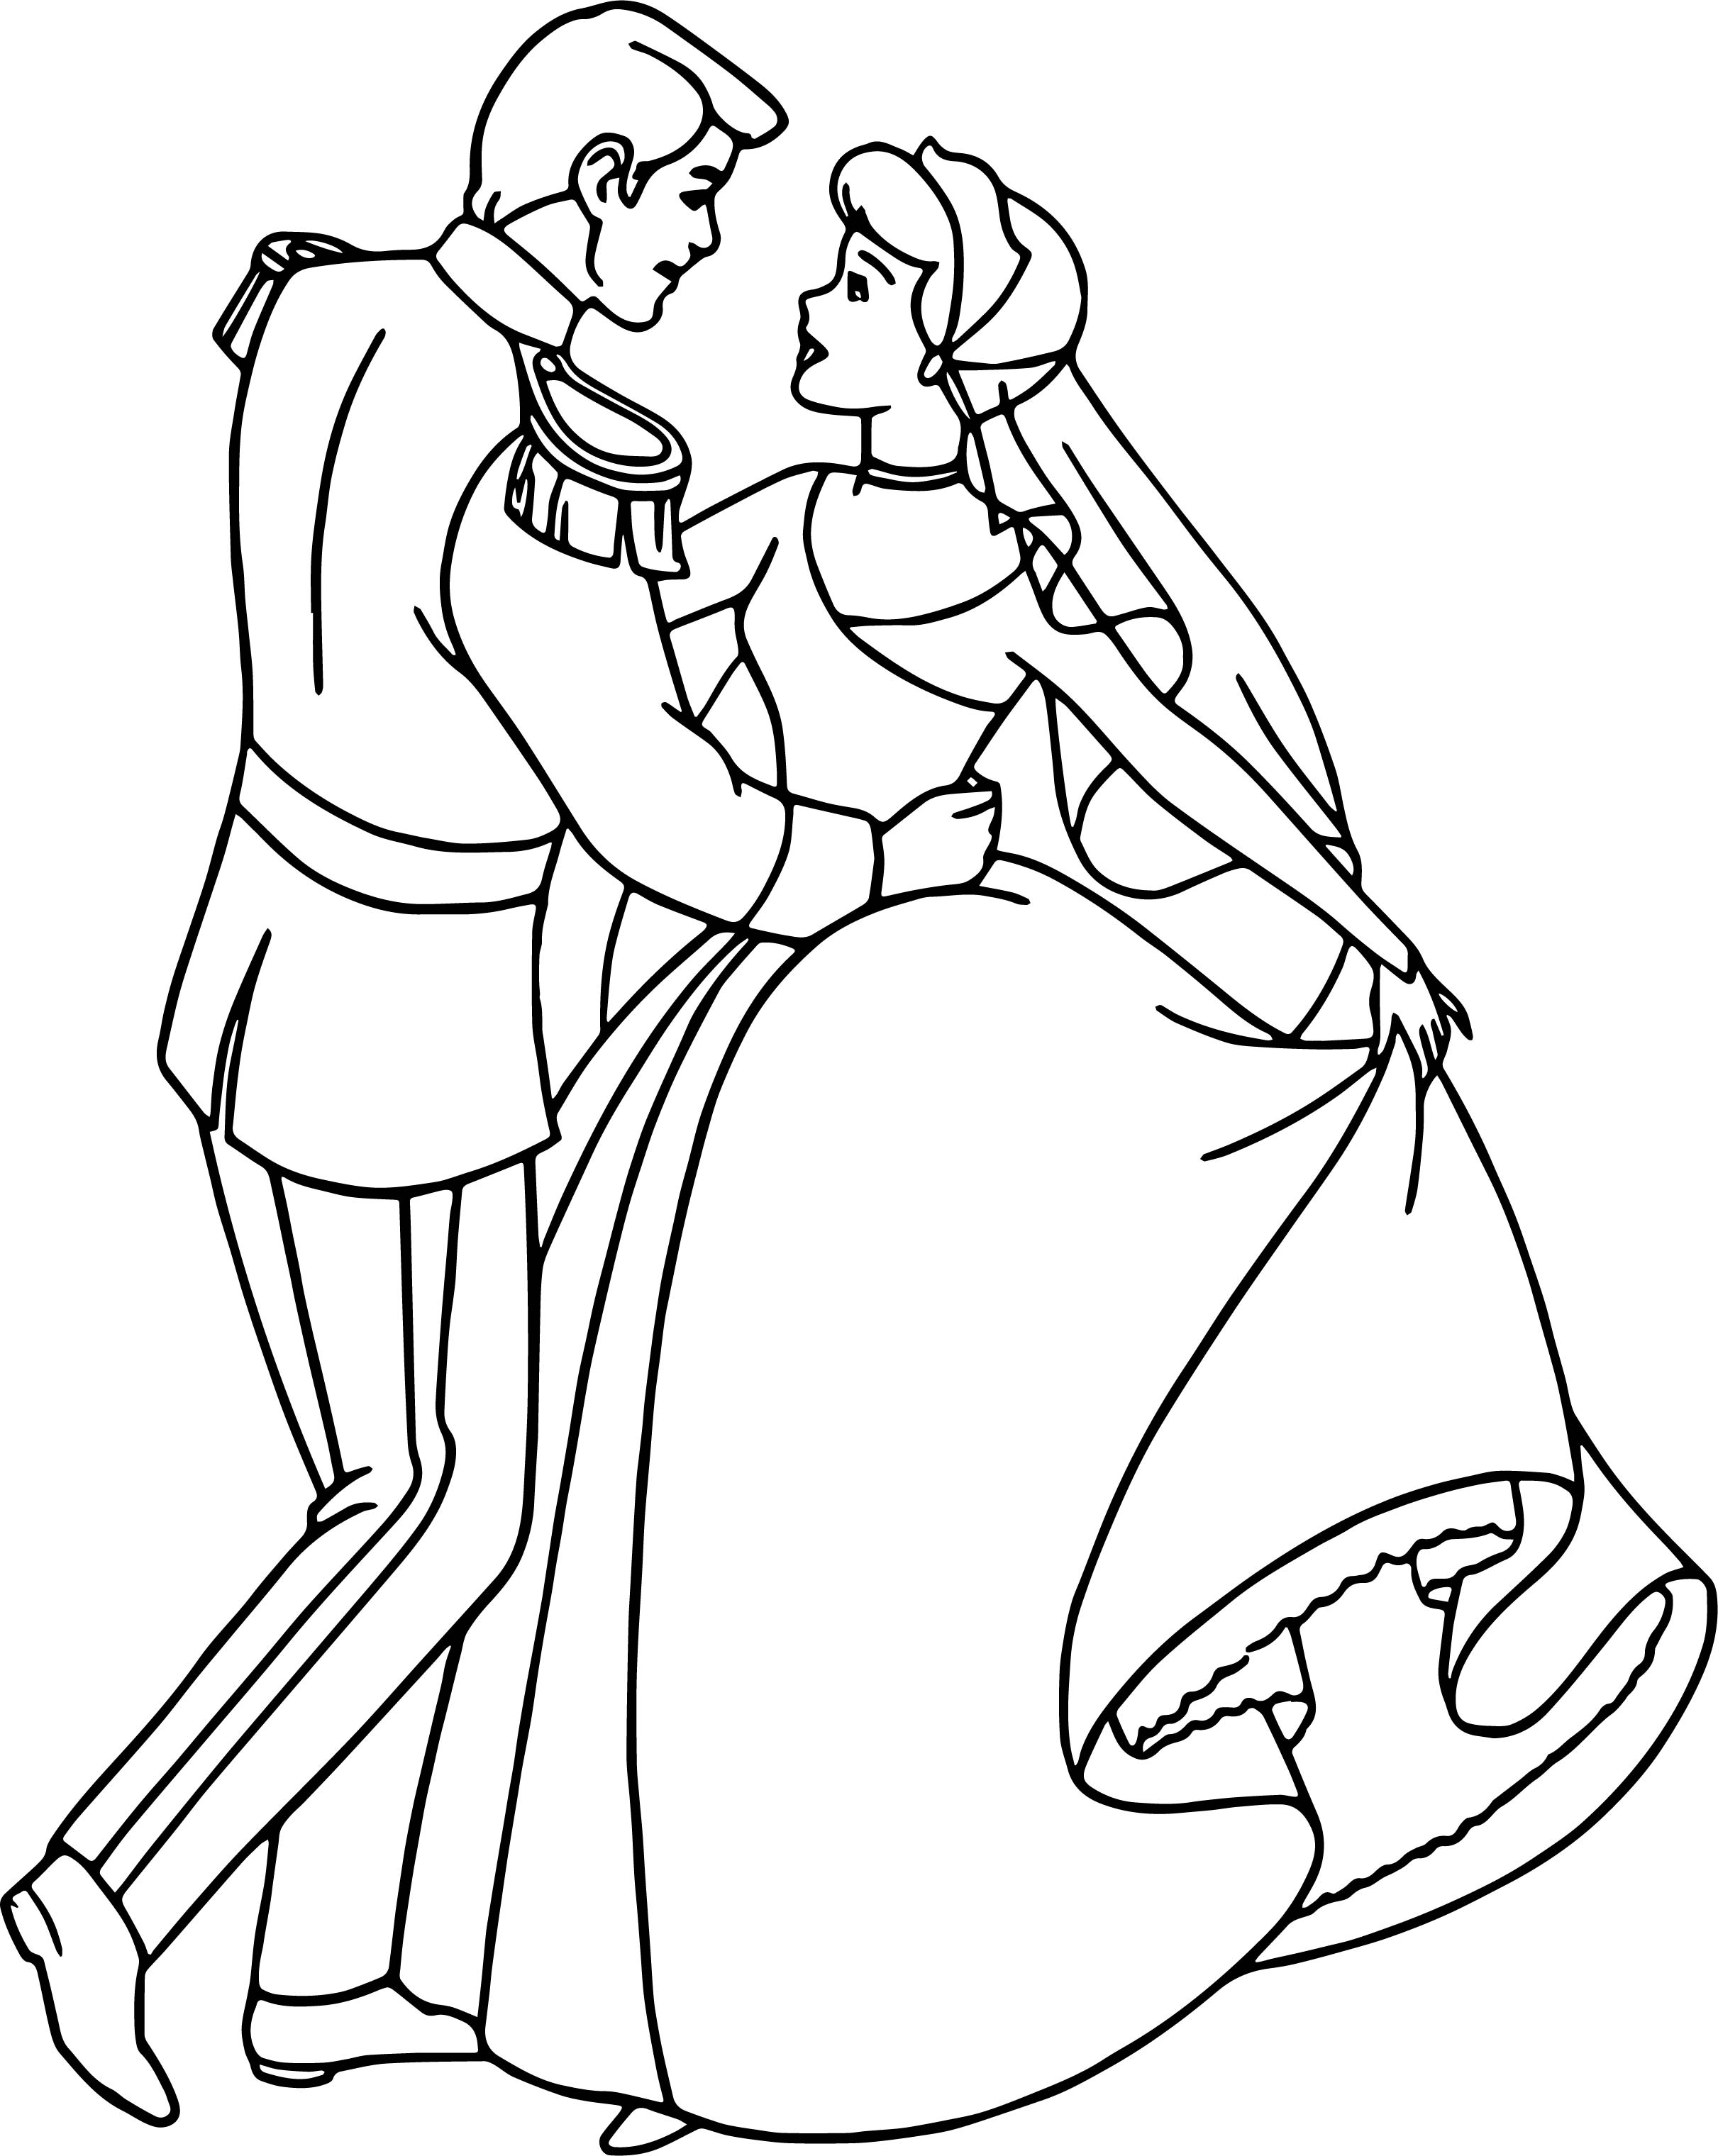 cinderella and prince charming dance coloring pages